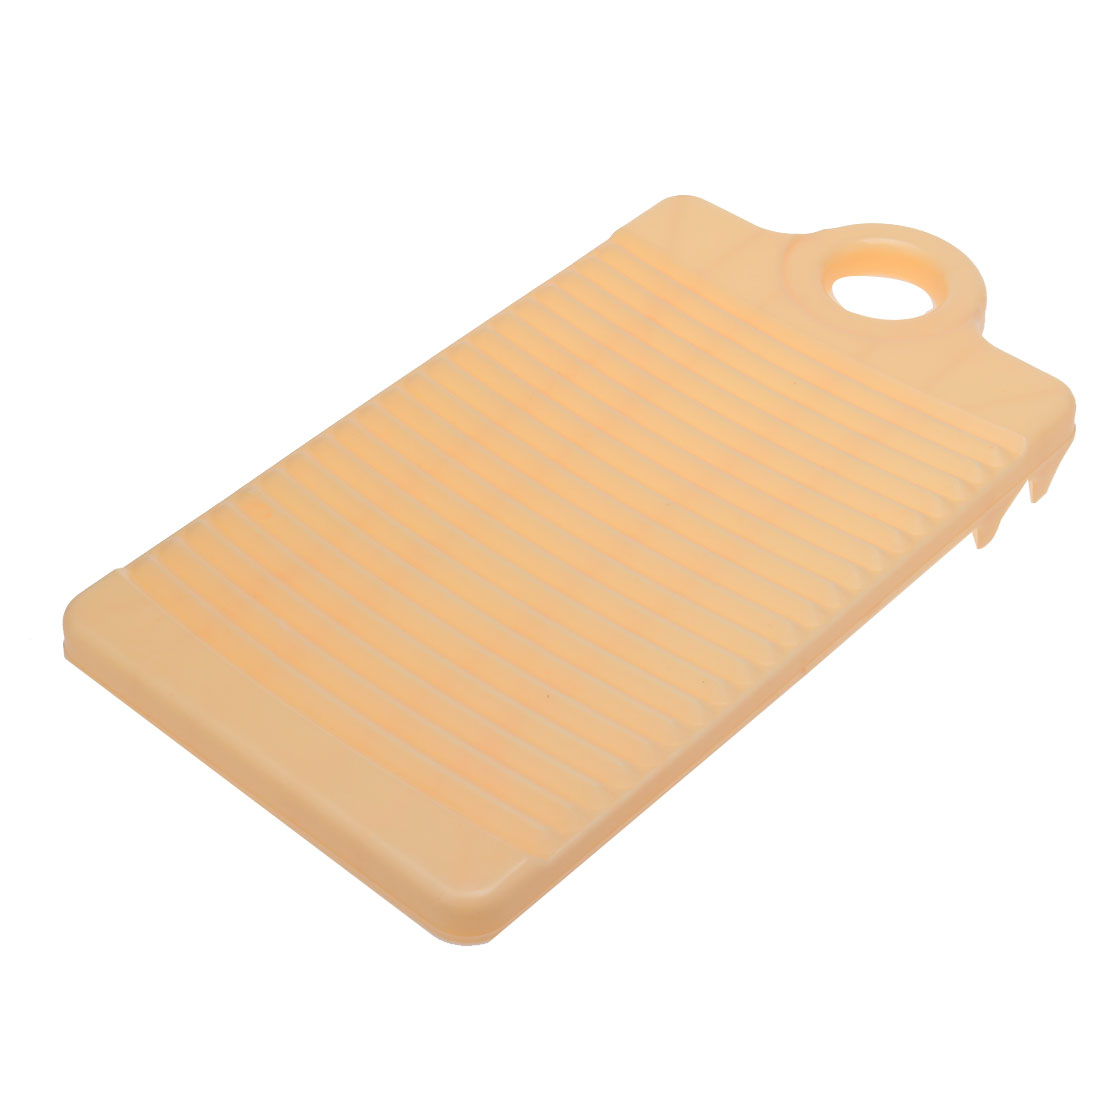 32cm Long Plastic Rectangle Washboard Washing Clothes Laundry Board Beige